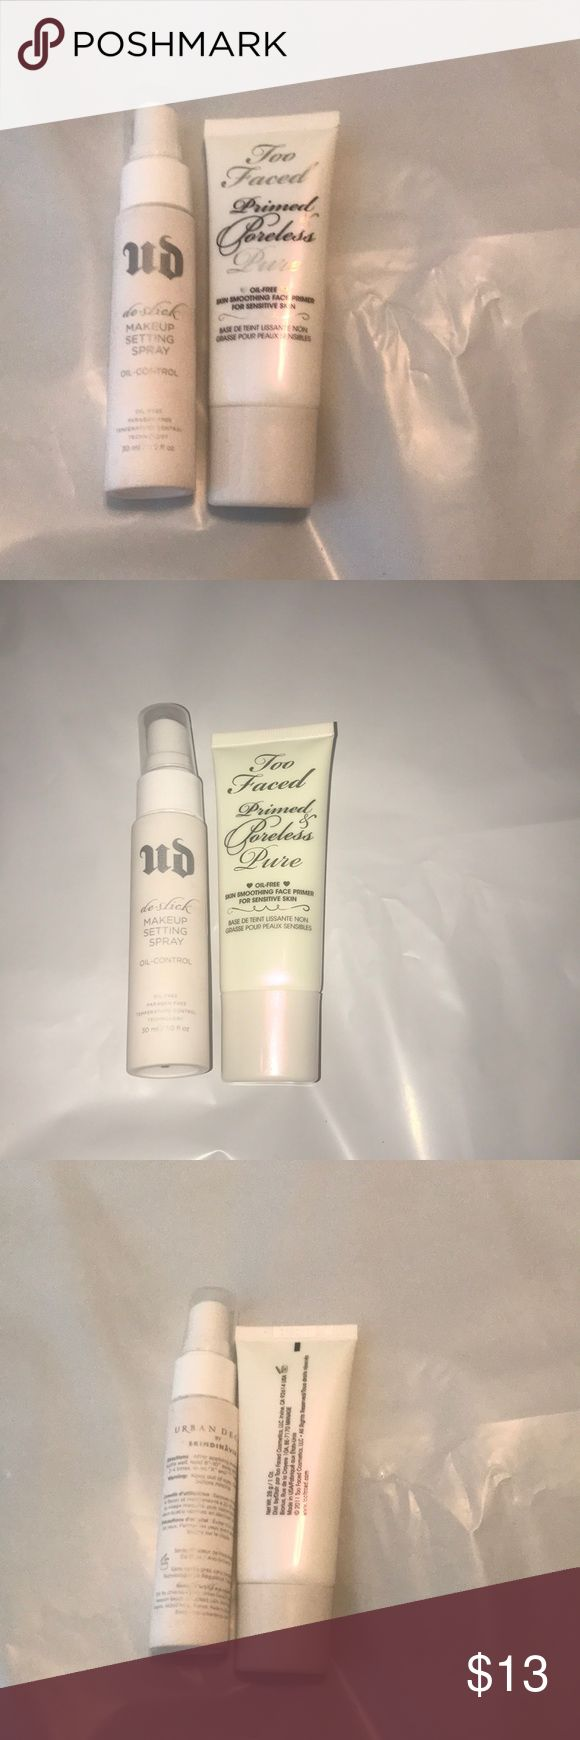 Too faced urban decay bundle primer/setting spray The urban decay de-slick setting spray is prolly 75% full and the too faced primer is prolly 80% full. Both are full size items and authentic Too Faced Makeup Face Primer